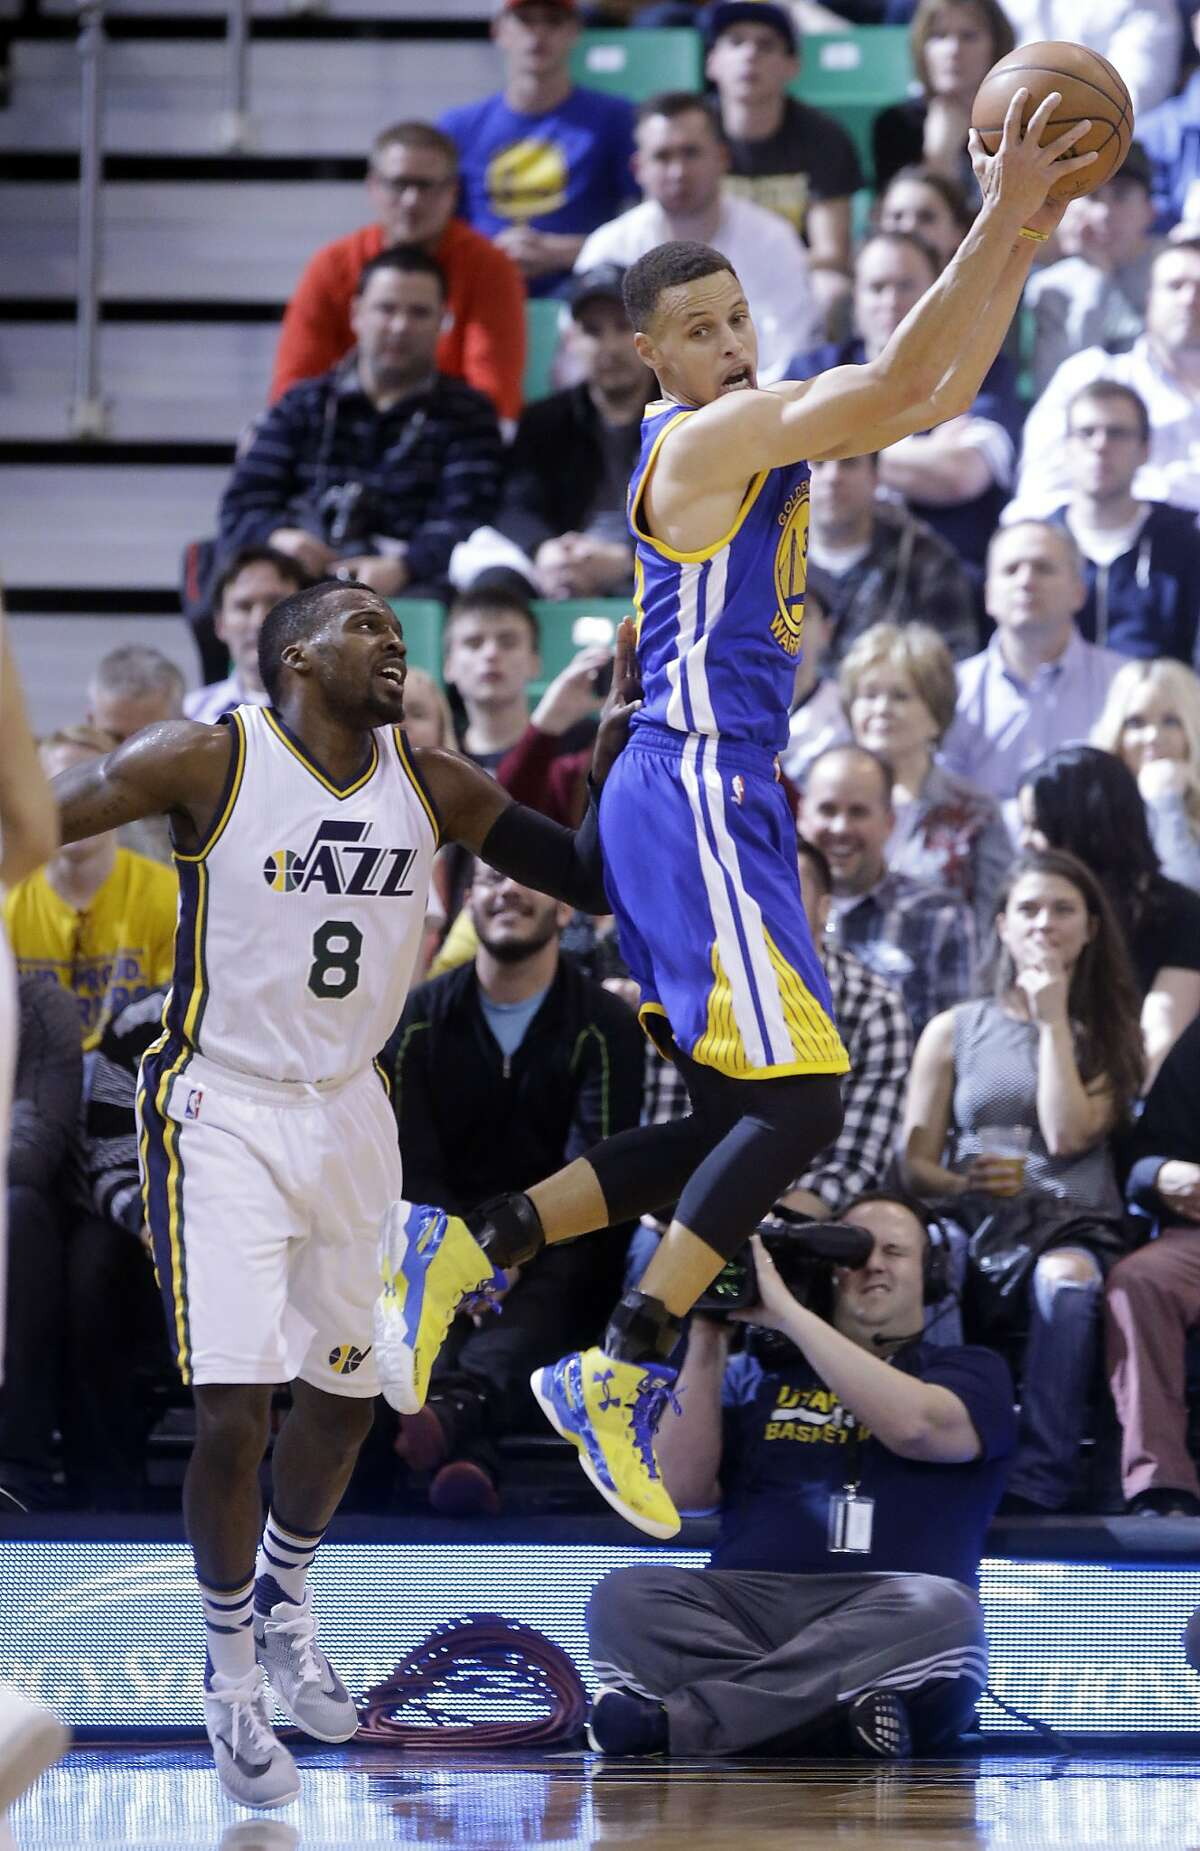 Golden State Warriors guard Stephen Curry (30) catches a pass while Utah Jazz guard Shelvin Mack (8) looks on during the first quarter of an NBA basketball game Wednesday, March 30, 2016, in Salt Lake City. (AP Photo/Rick Bowmer)